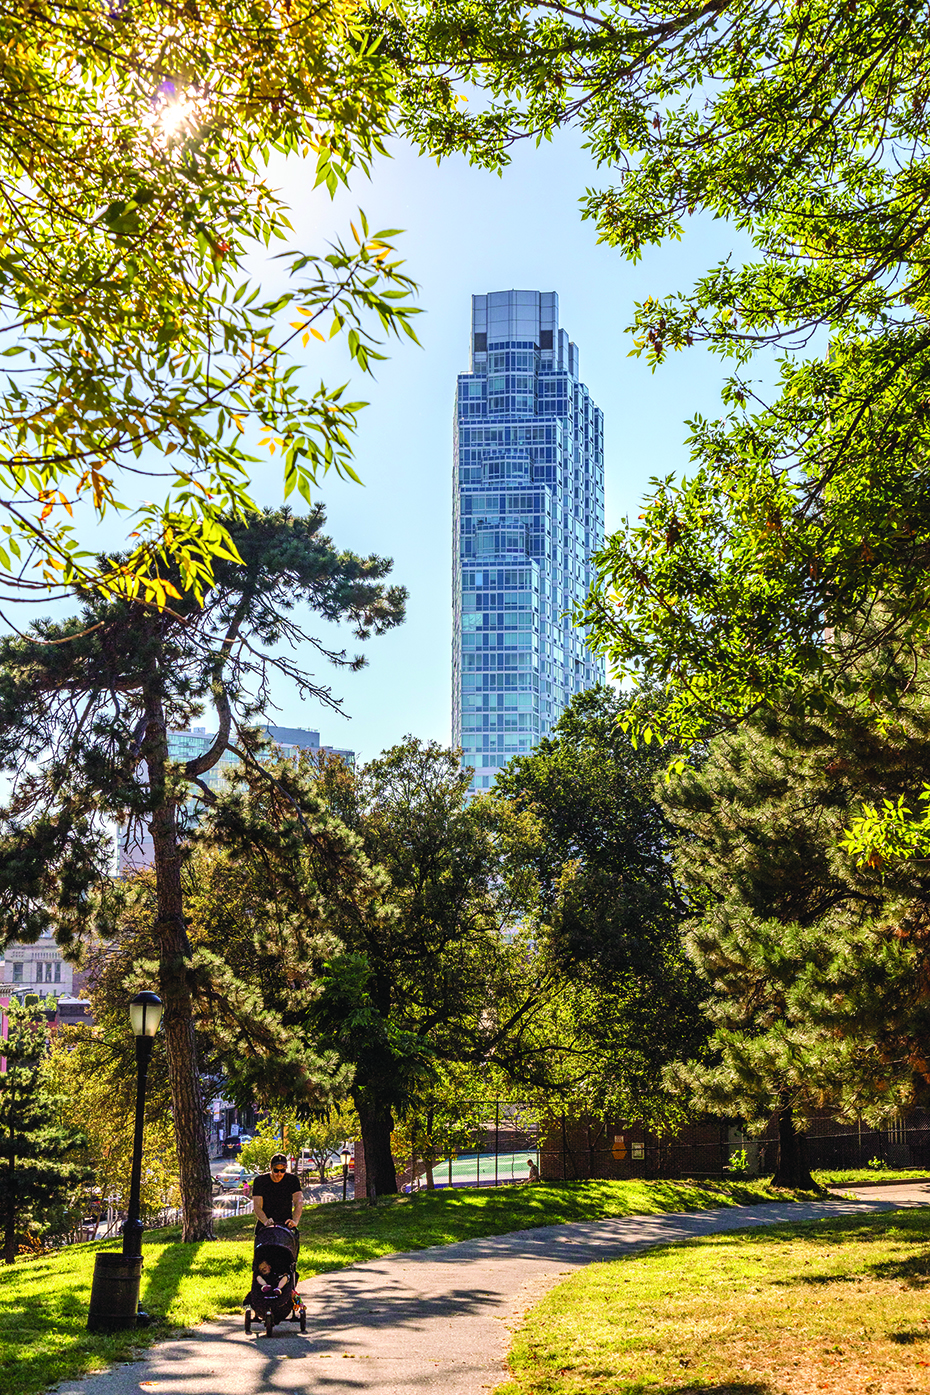 View of a high-rise apartment building from a park